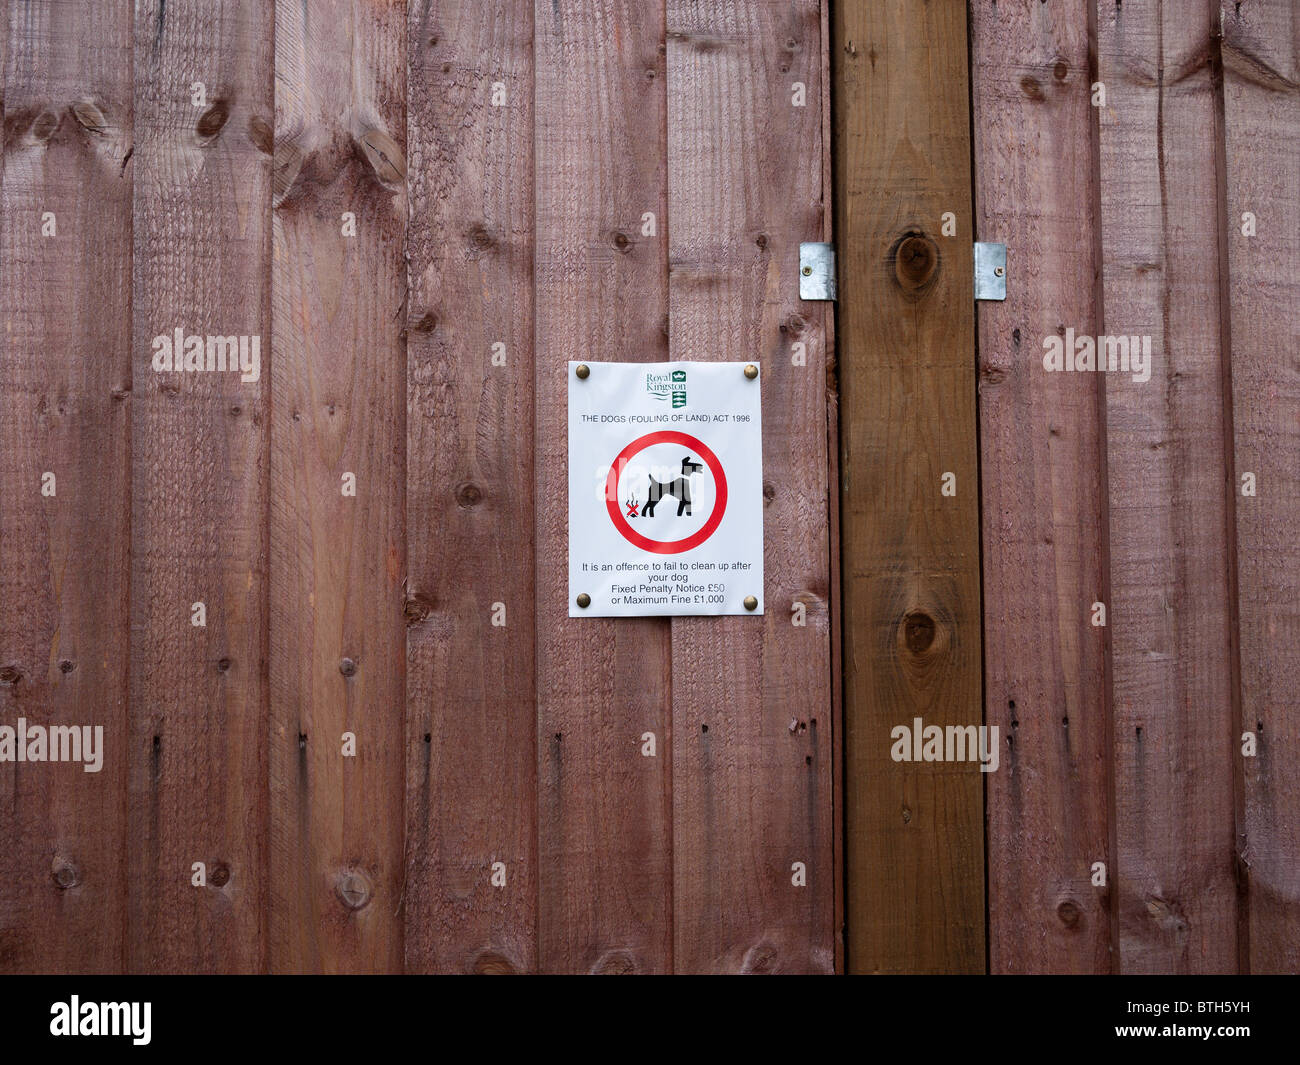 notice warning owners not to let their digs foul the land. - Stock Image